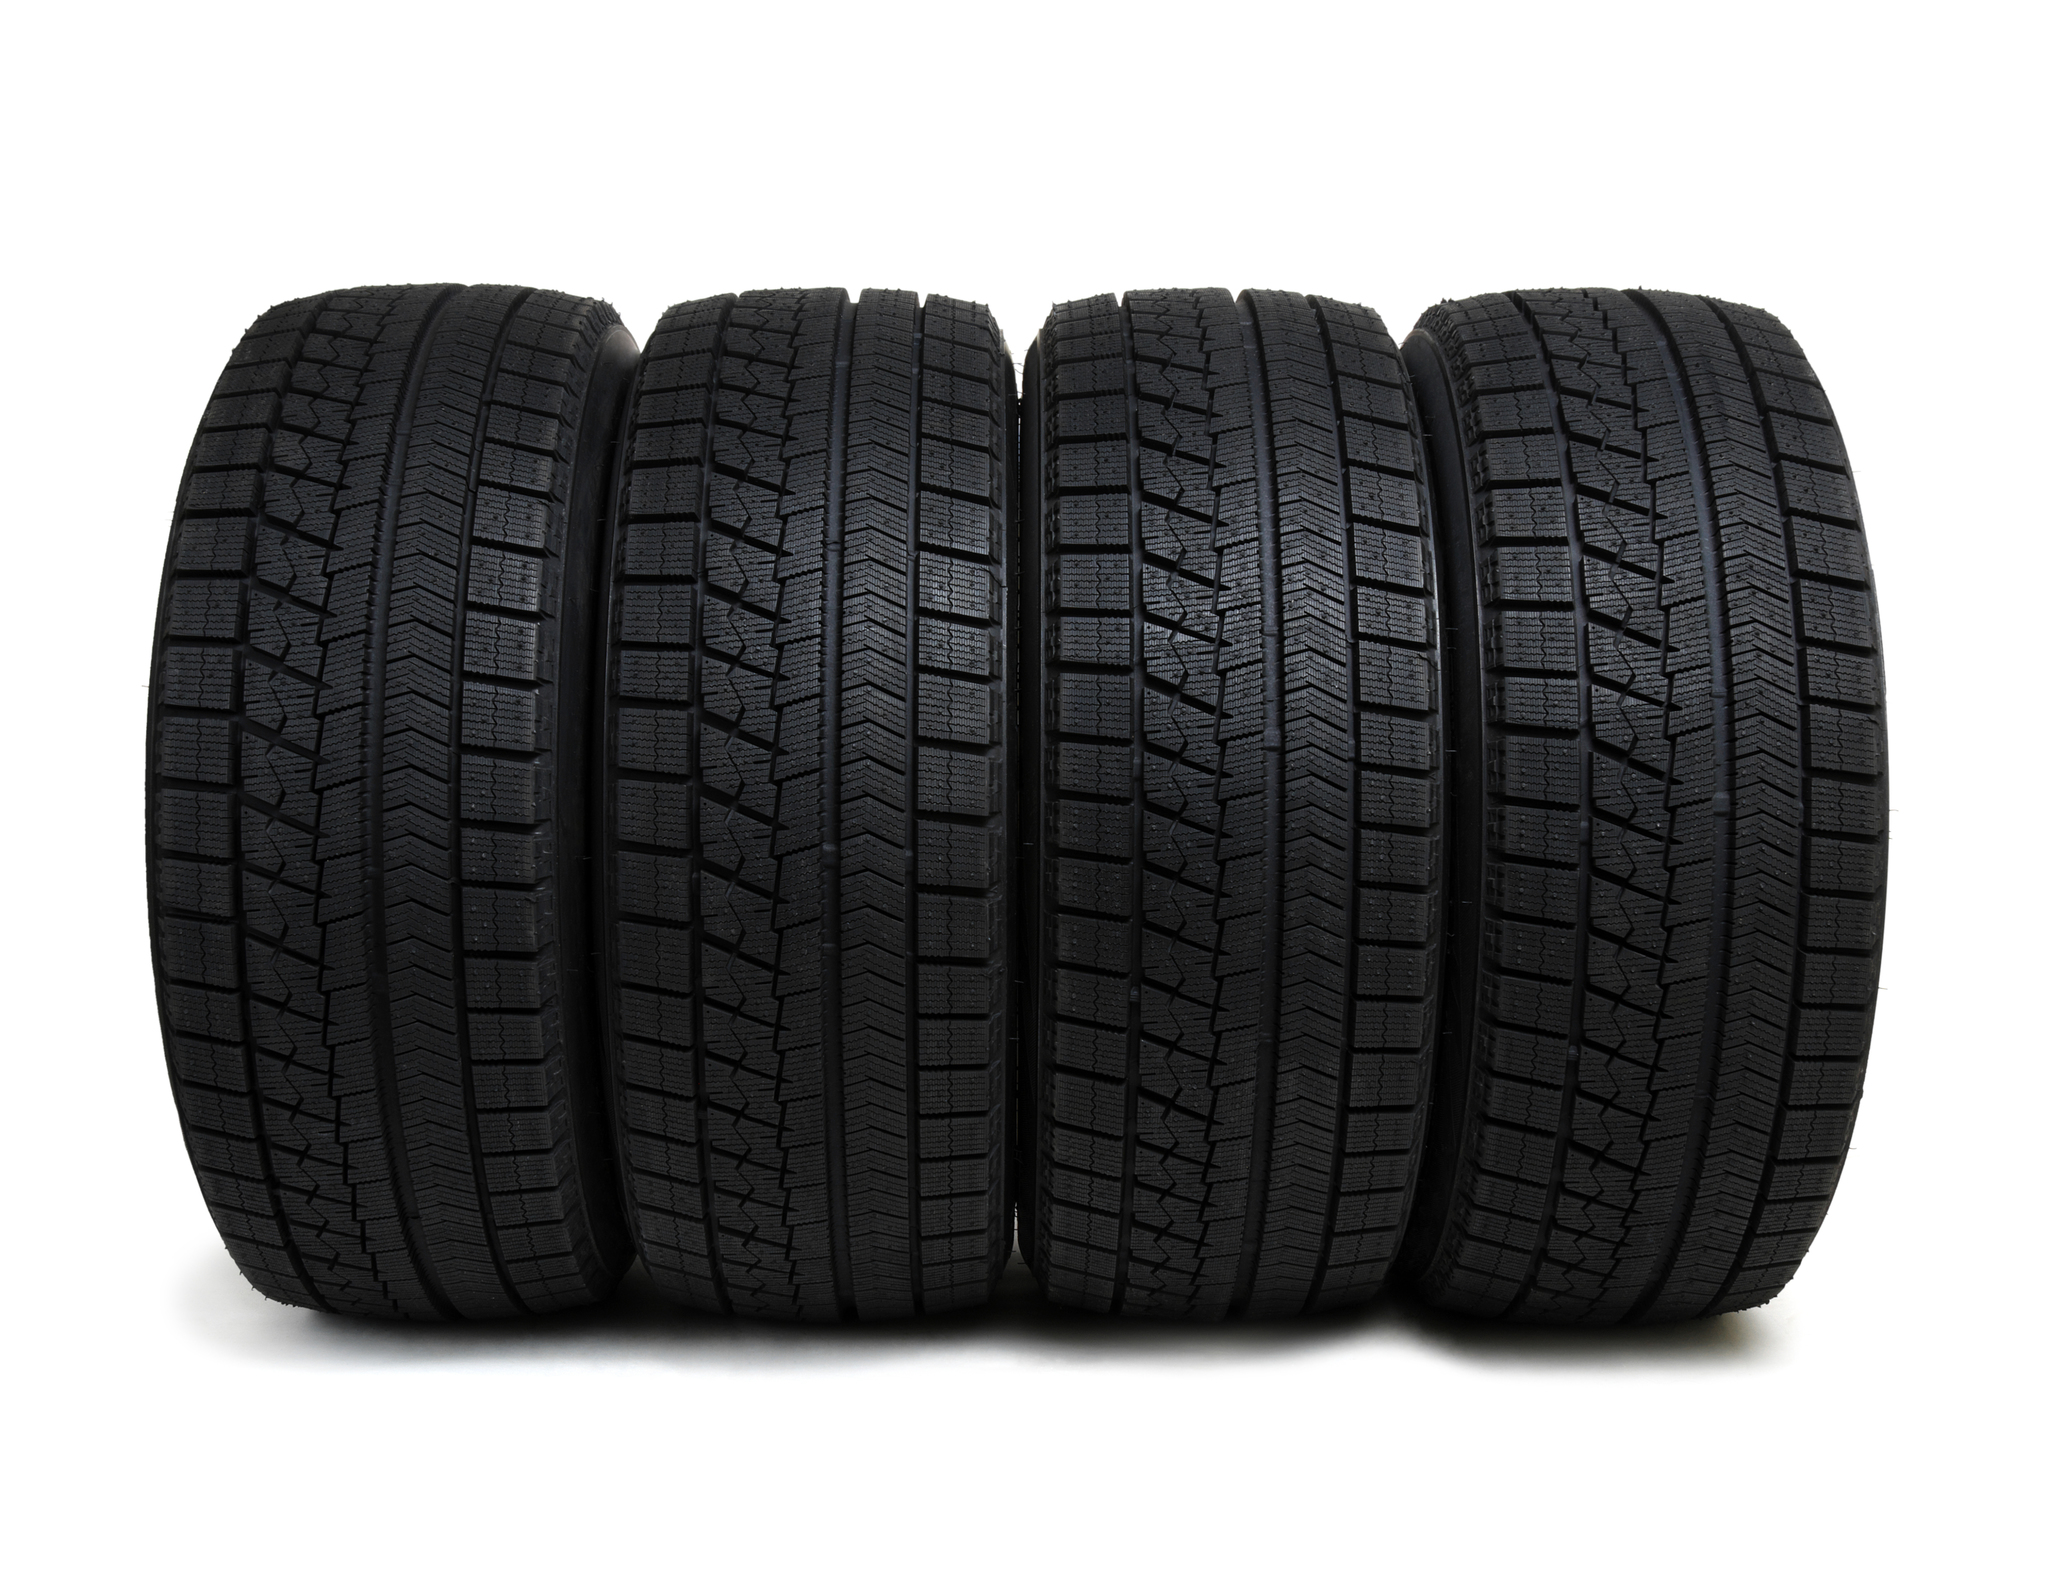 Free Alignment With The Purchase of 4 Tires